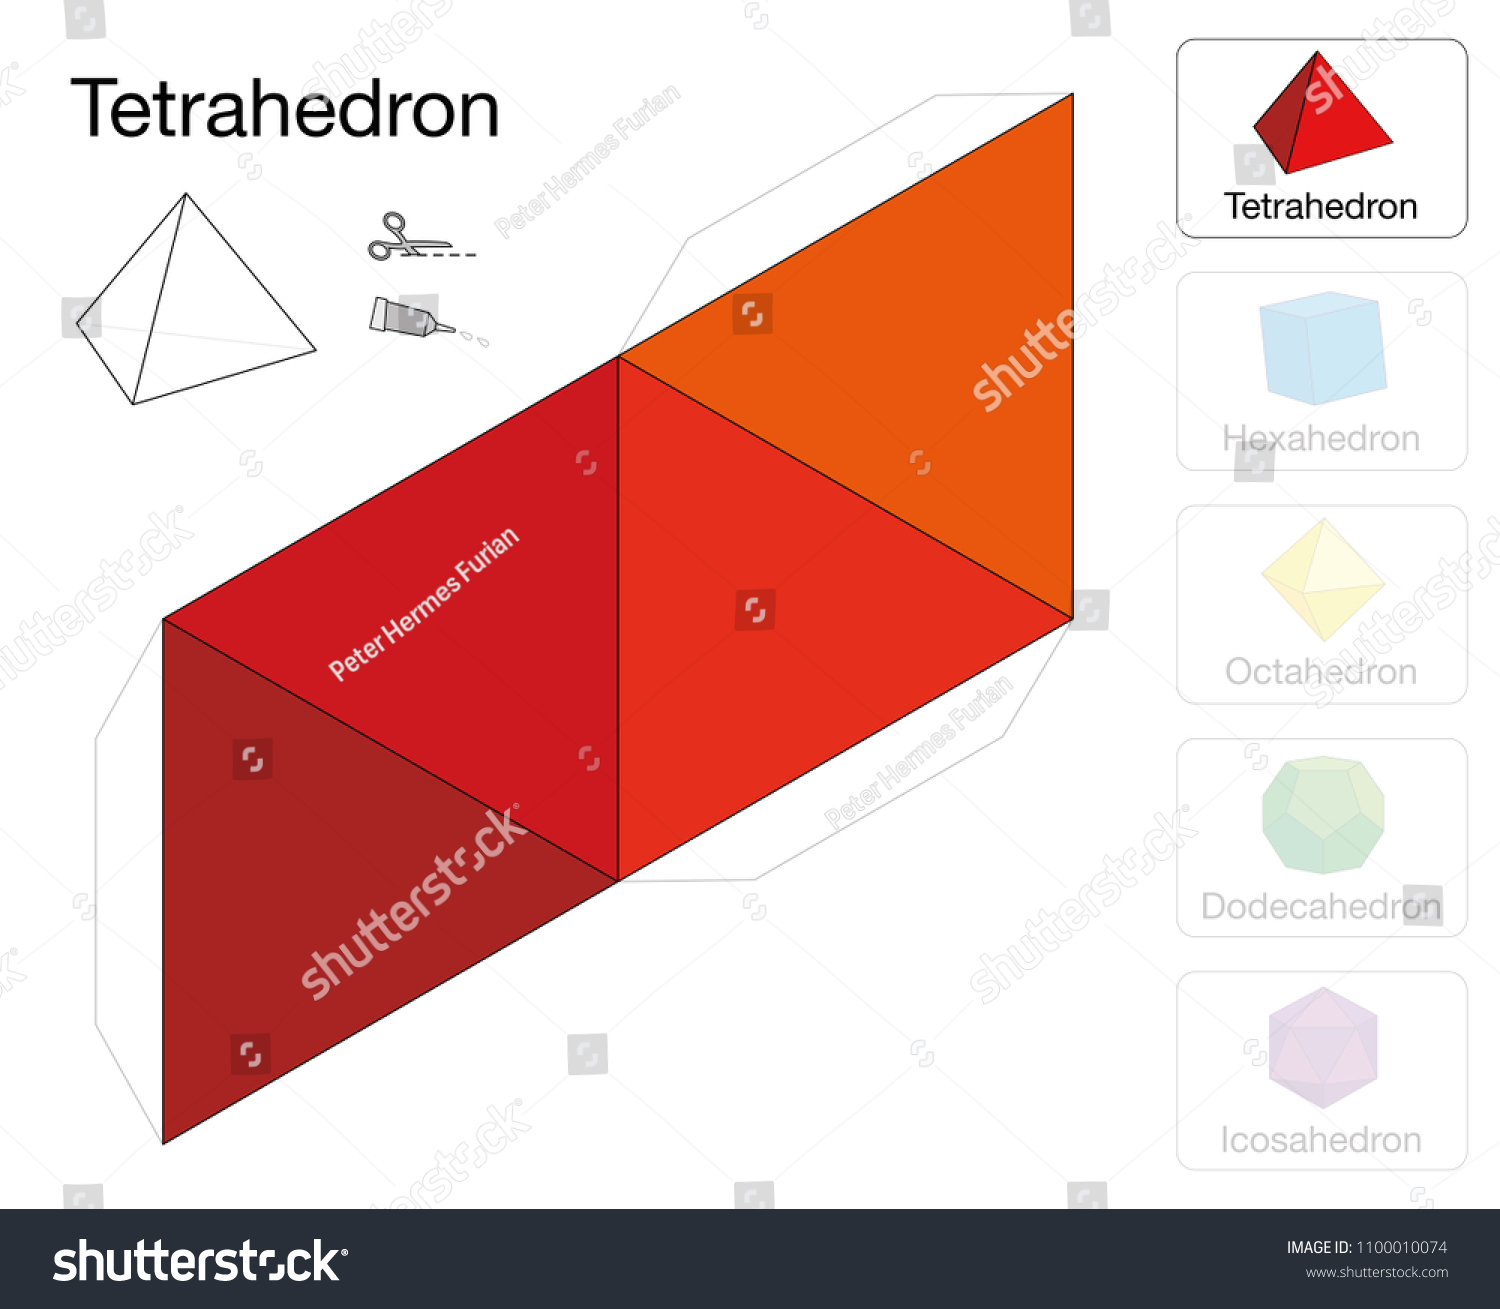 Tetrahedron Platonic Solid Template Paper Model Stock Vector